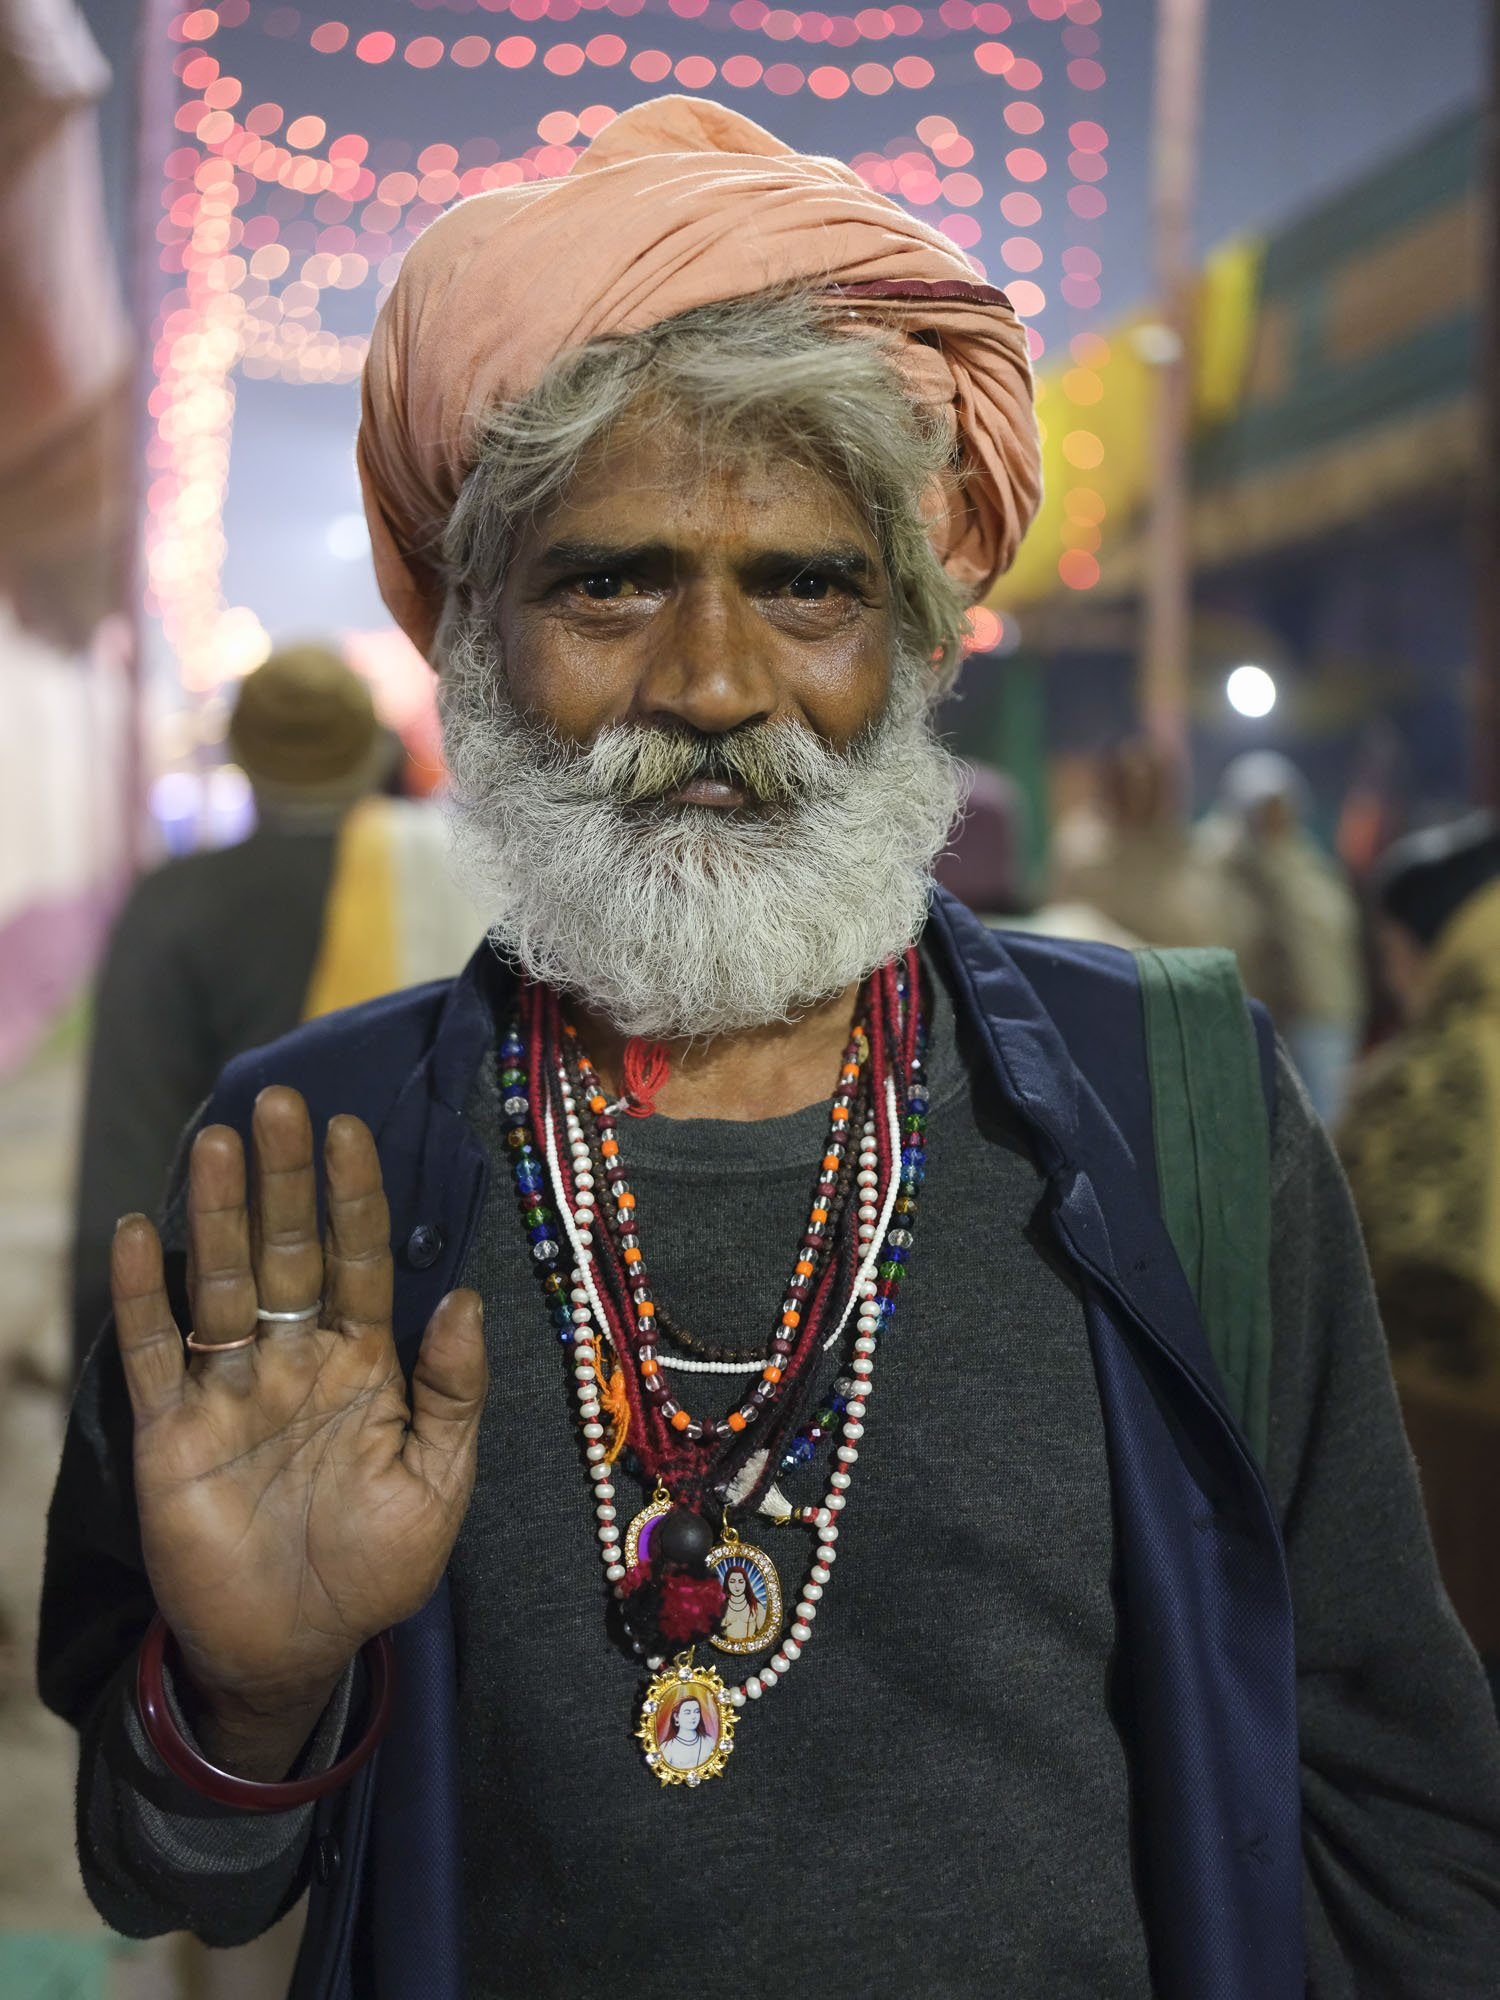 pretty portrait pilgrims Kumbh mela 2019 India Allahabad Prayagraj Ardh hindu religious Festival event rivers photographer jose jeuland photography